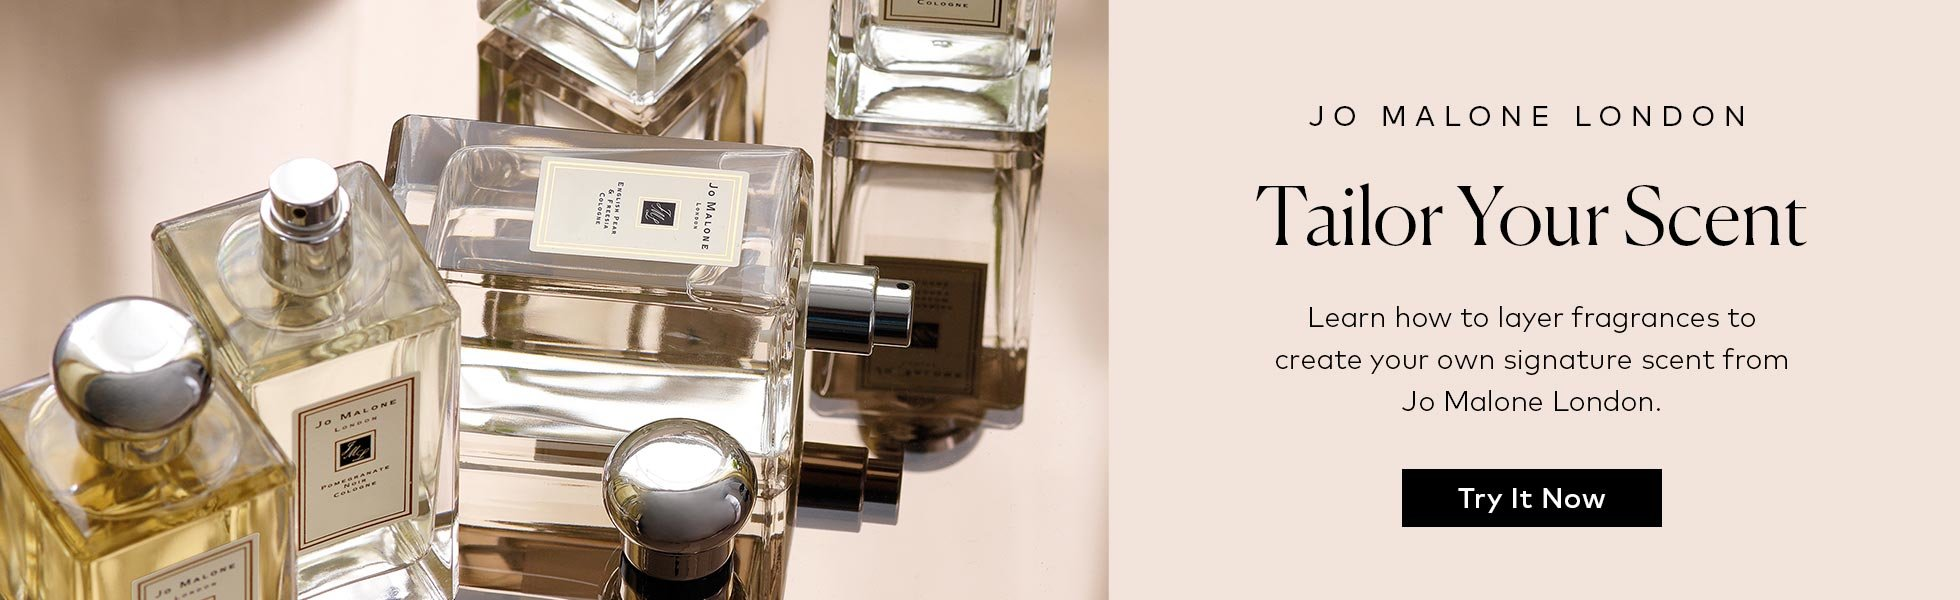 Tailor your scent with fragrance layering – Jo Malone London shows you how.